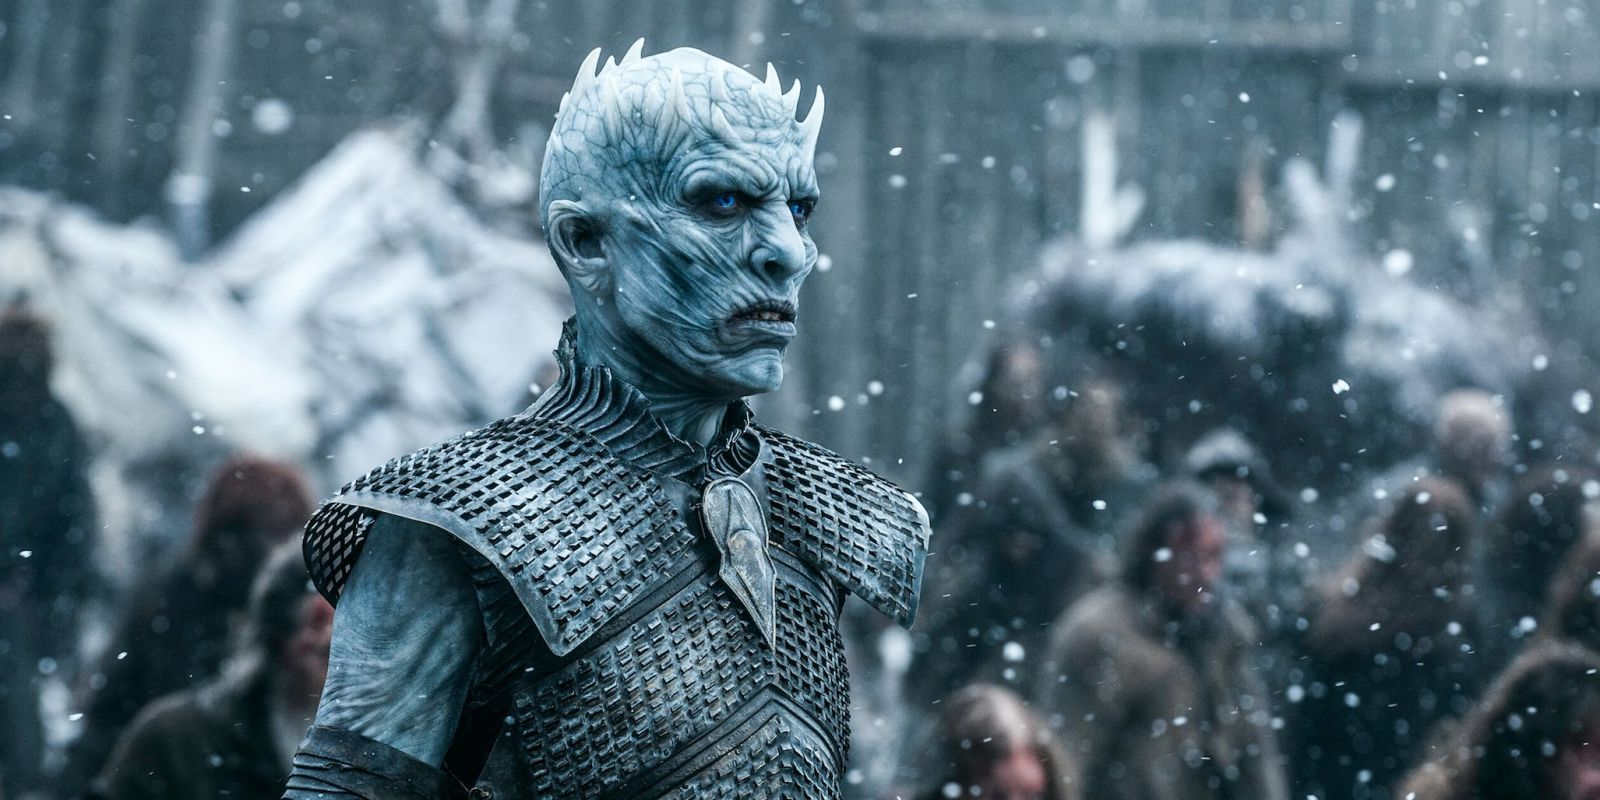 Boss Makes Game Of Thrones Prediction Sheet For Employees To Bet On Who Lives And Dies